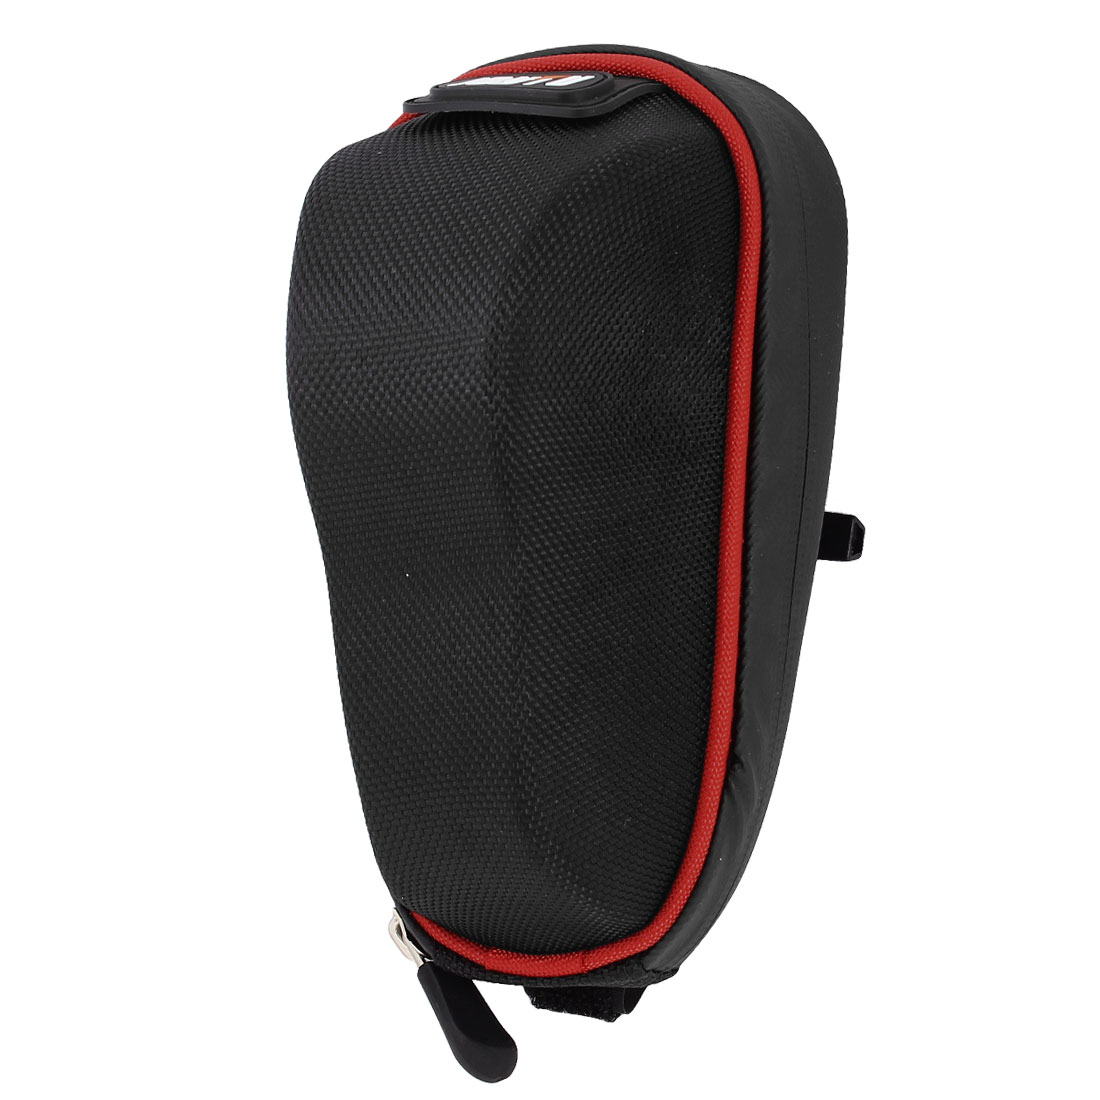 Bike Bicycle Cycling Riding Saddle Seat Rear Tail Bag Pouch Black Red